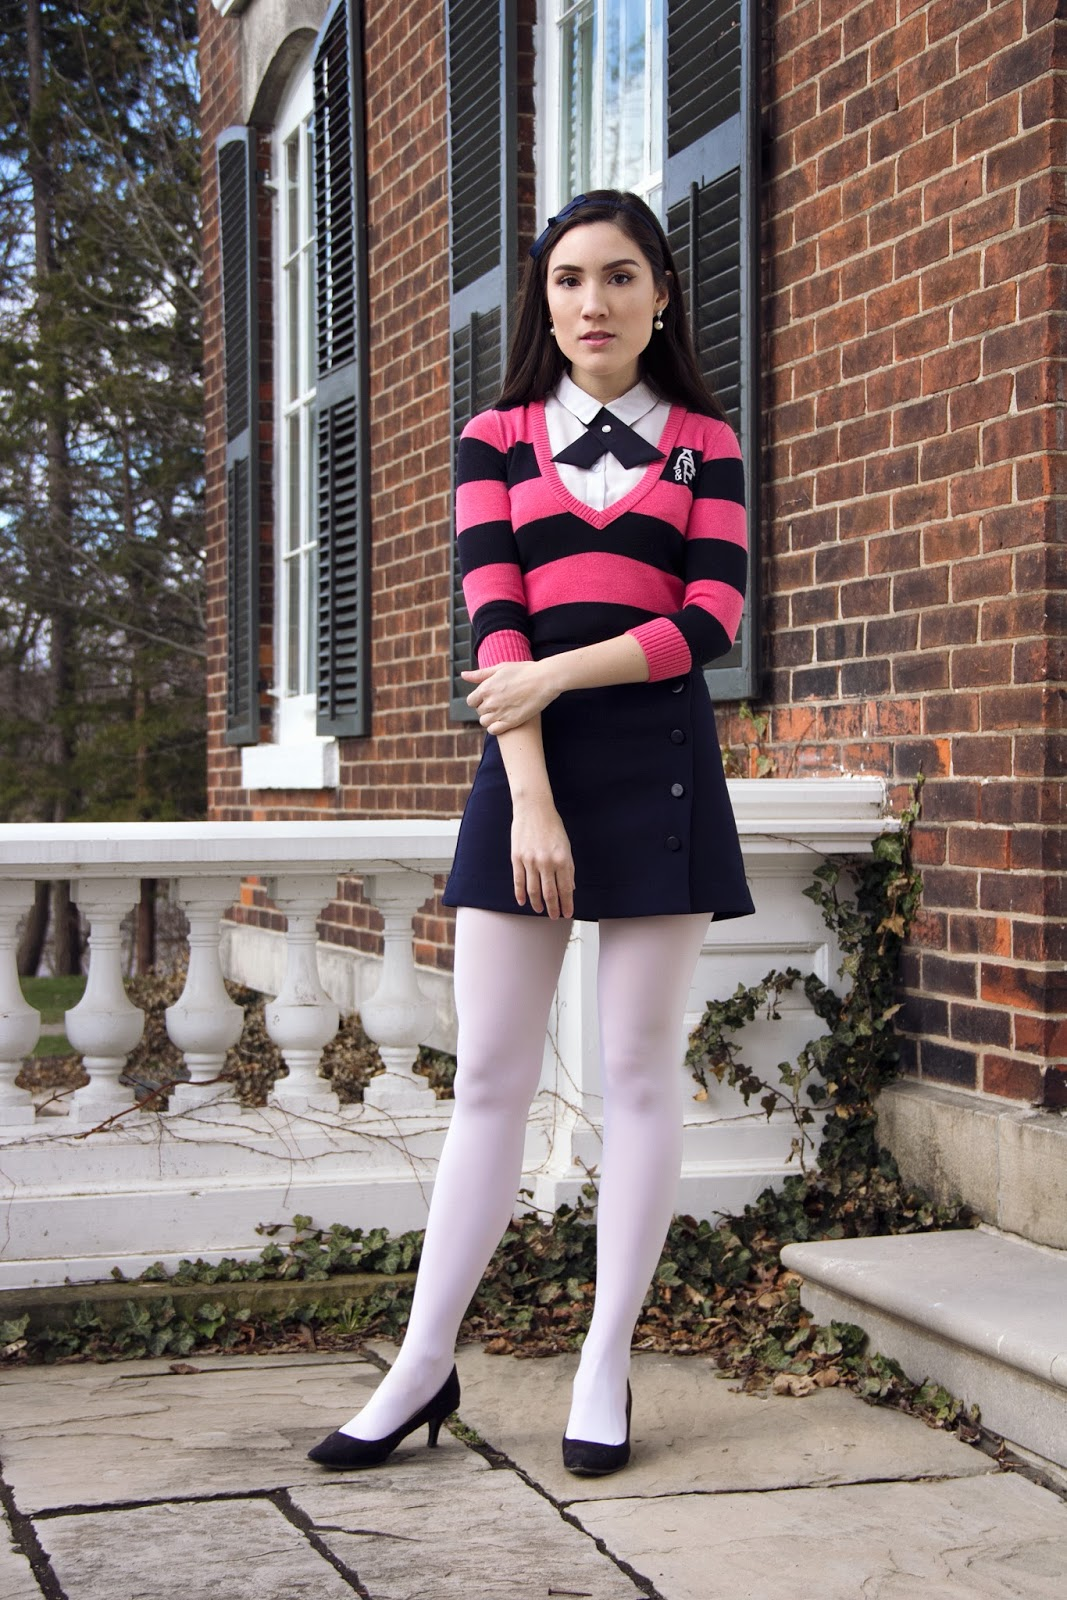 ragabjv.gq: pink striped tights. Check out our other products, including White Striped Kids Tights. Music Legs Wide striped tights. by Music Legs. $ - $ $ 5 $ 31 12 Prime. FREE Shipping on eligible orders. Some sizes/colors are Prime eligible. out of 5 stars Product Features.